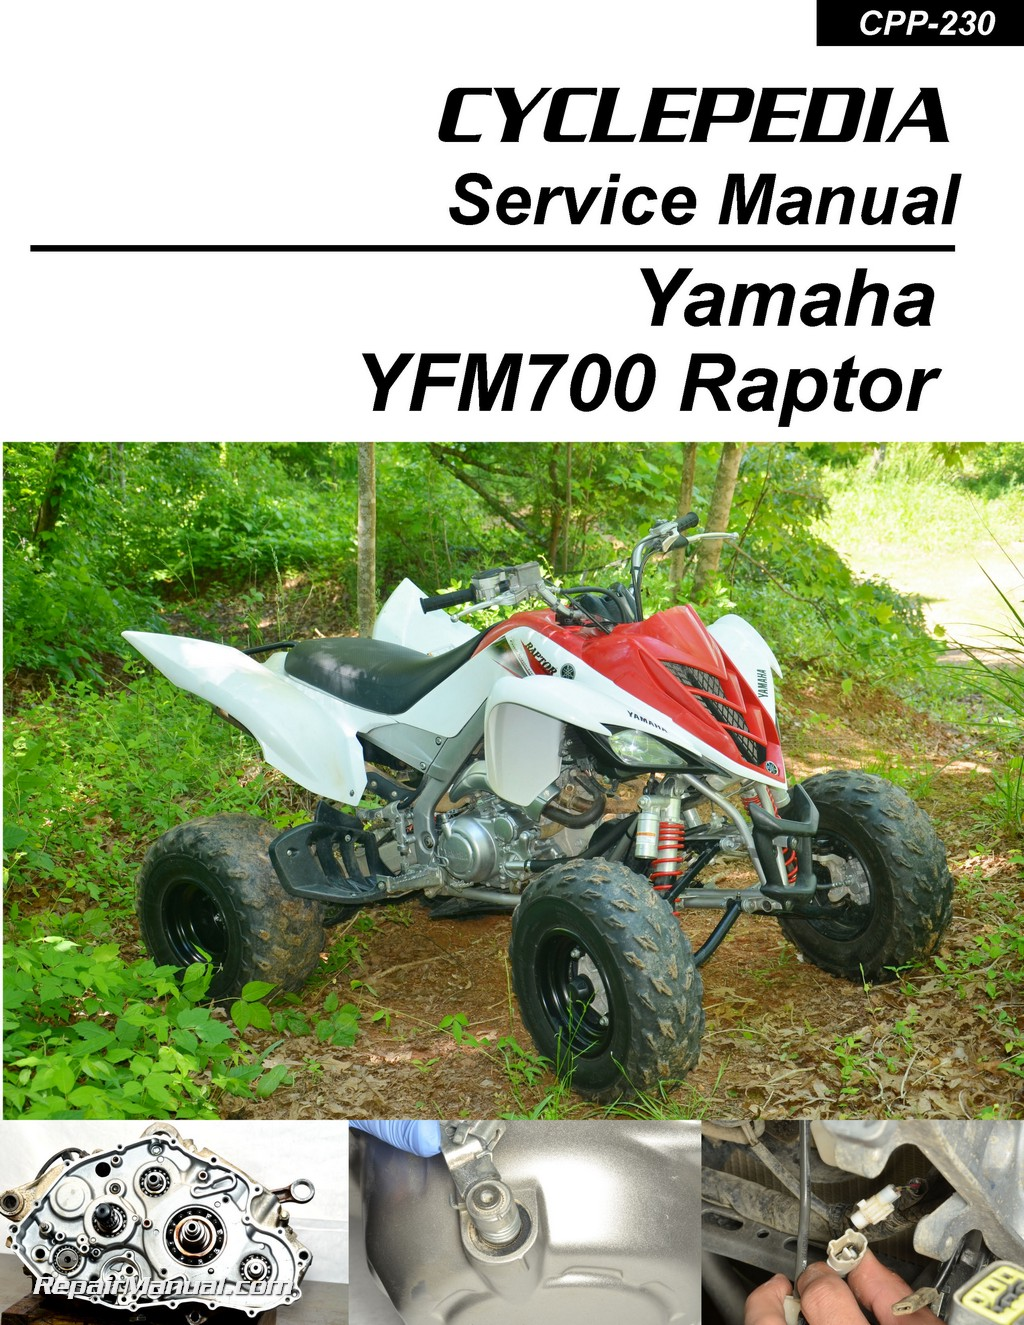 Cyclepedia-Yamaha-YFM-700-Raptor-ATV-Printed-Service- ...